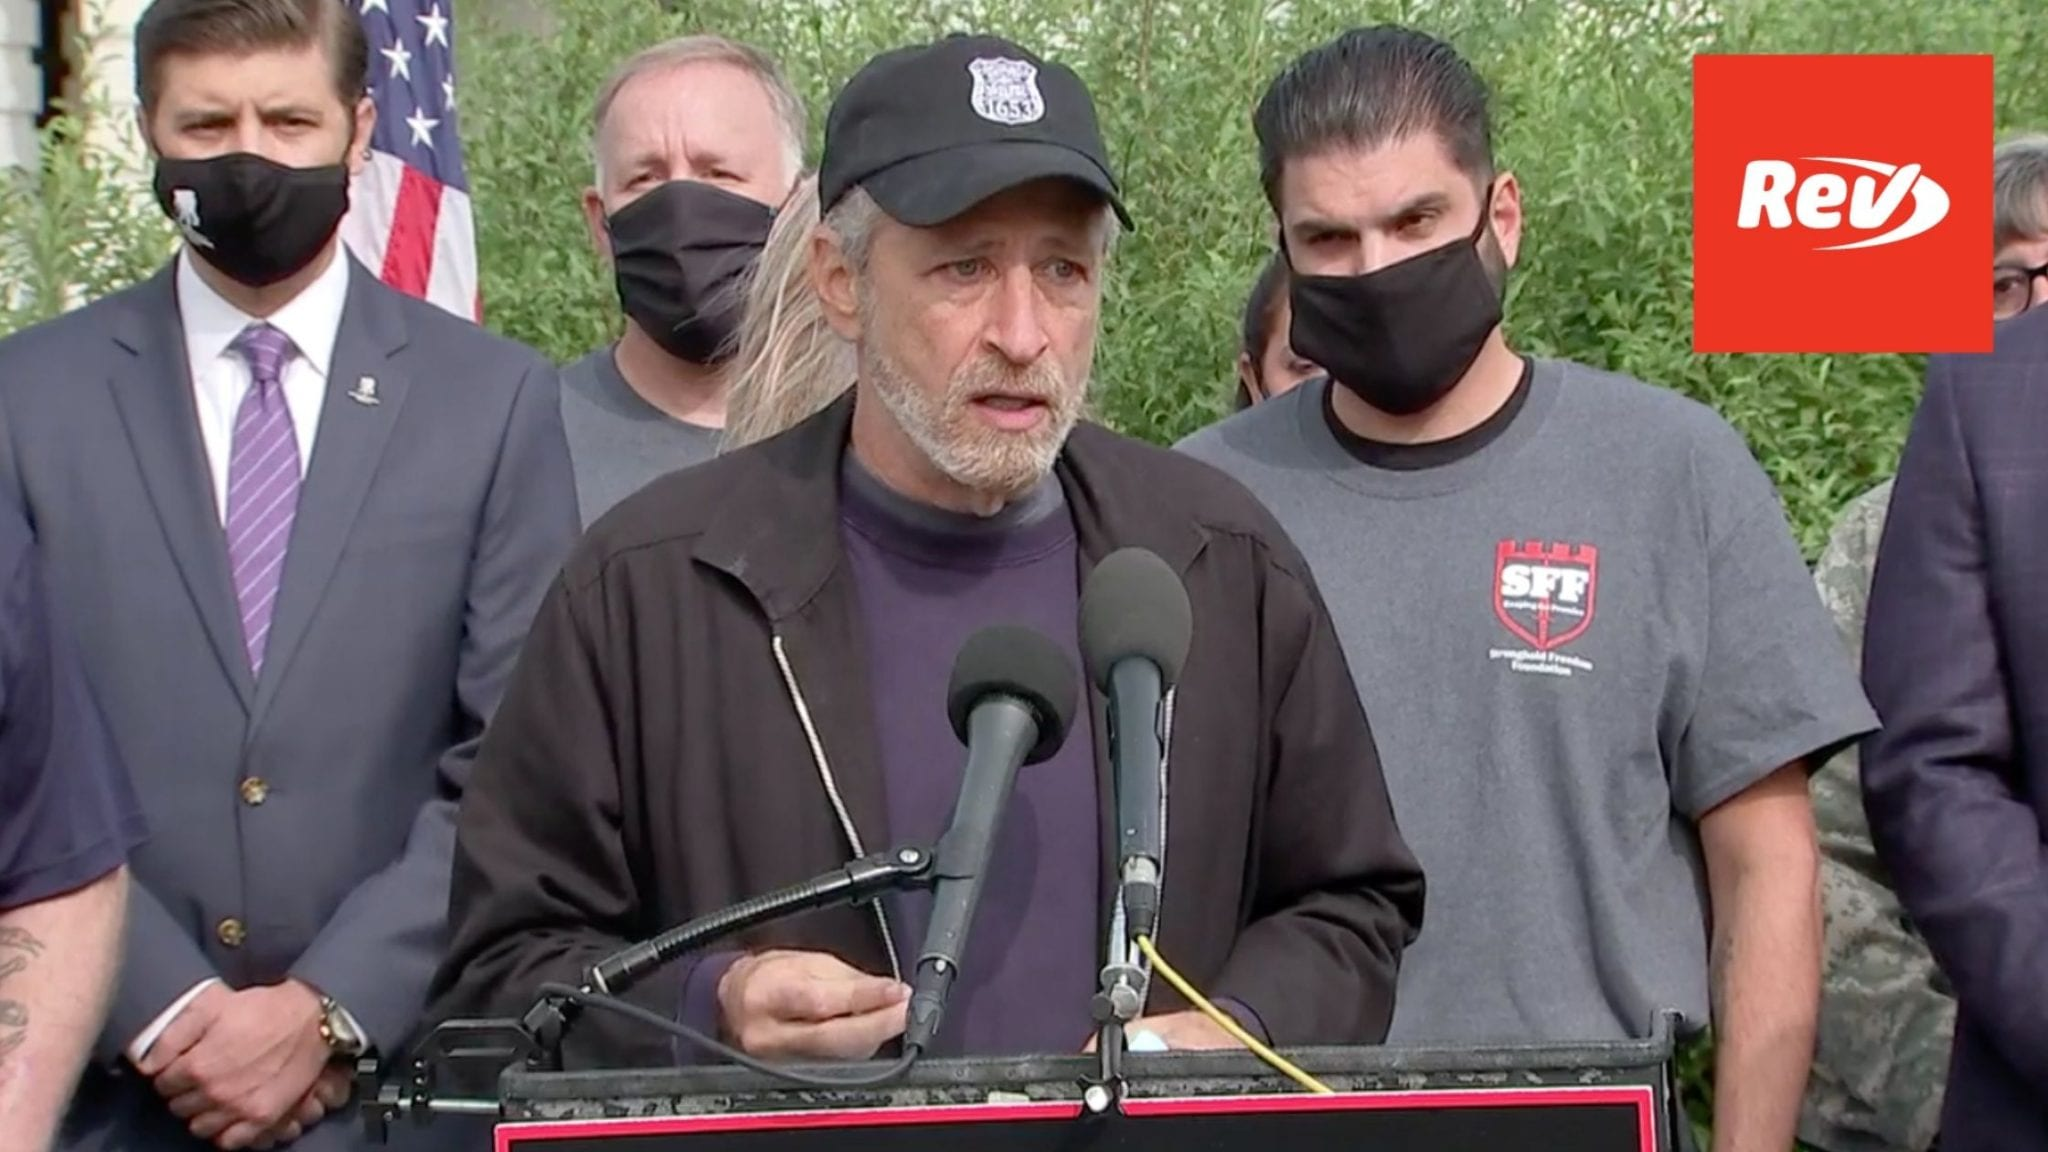 Jon Stewart, Kirsten Gillibrand Press Conference Transcript: Burn Pit Relief for Veterans